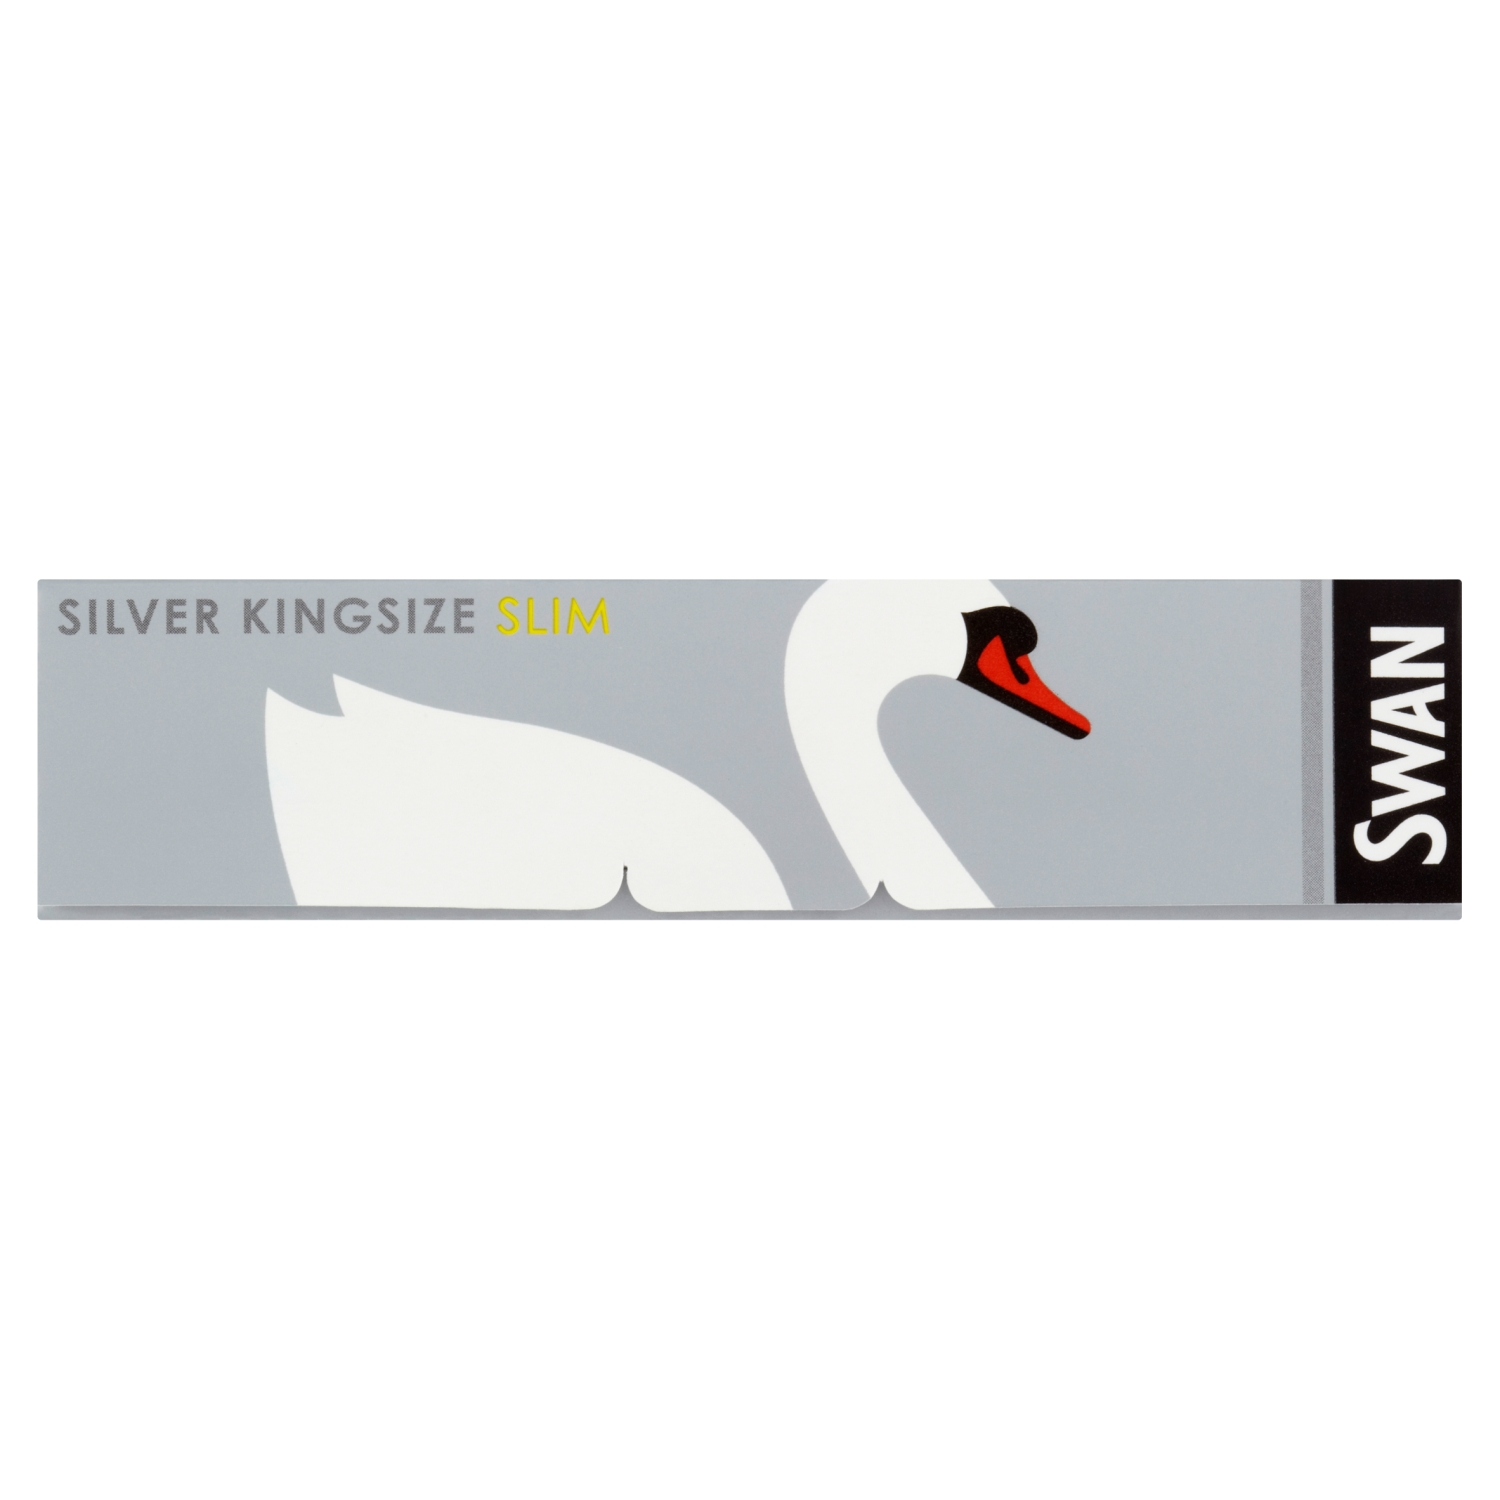 Swan Silver Kingsize Slim Ultra Fine Weight 32 Superior Quality Gummed Papers